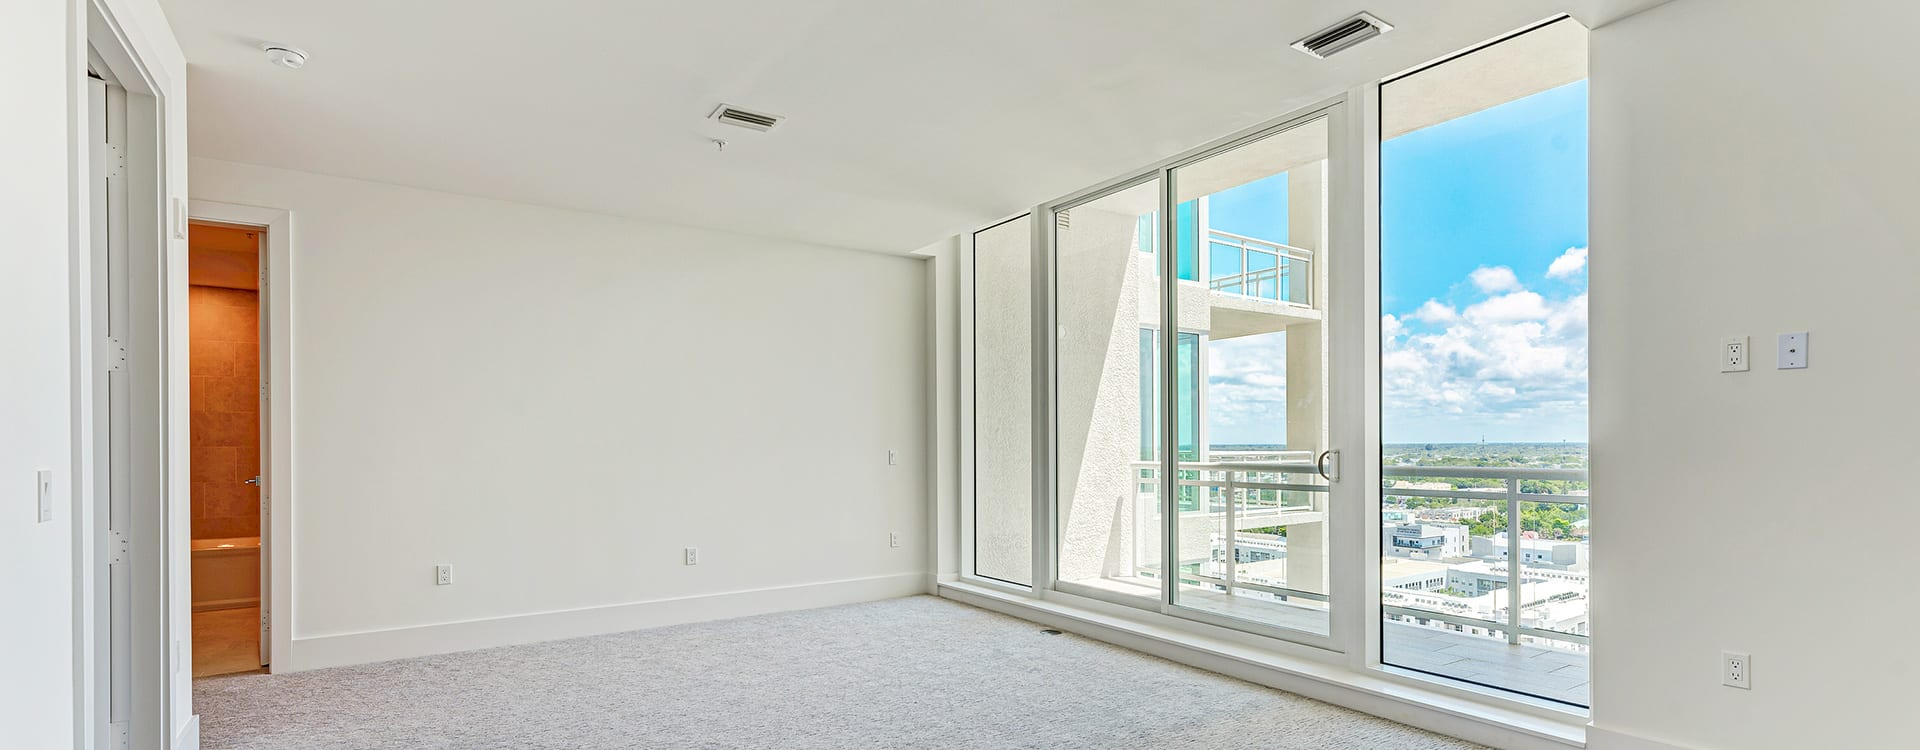 bedroom with view at BLVD Sarasota Residence 1603